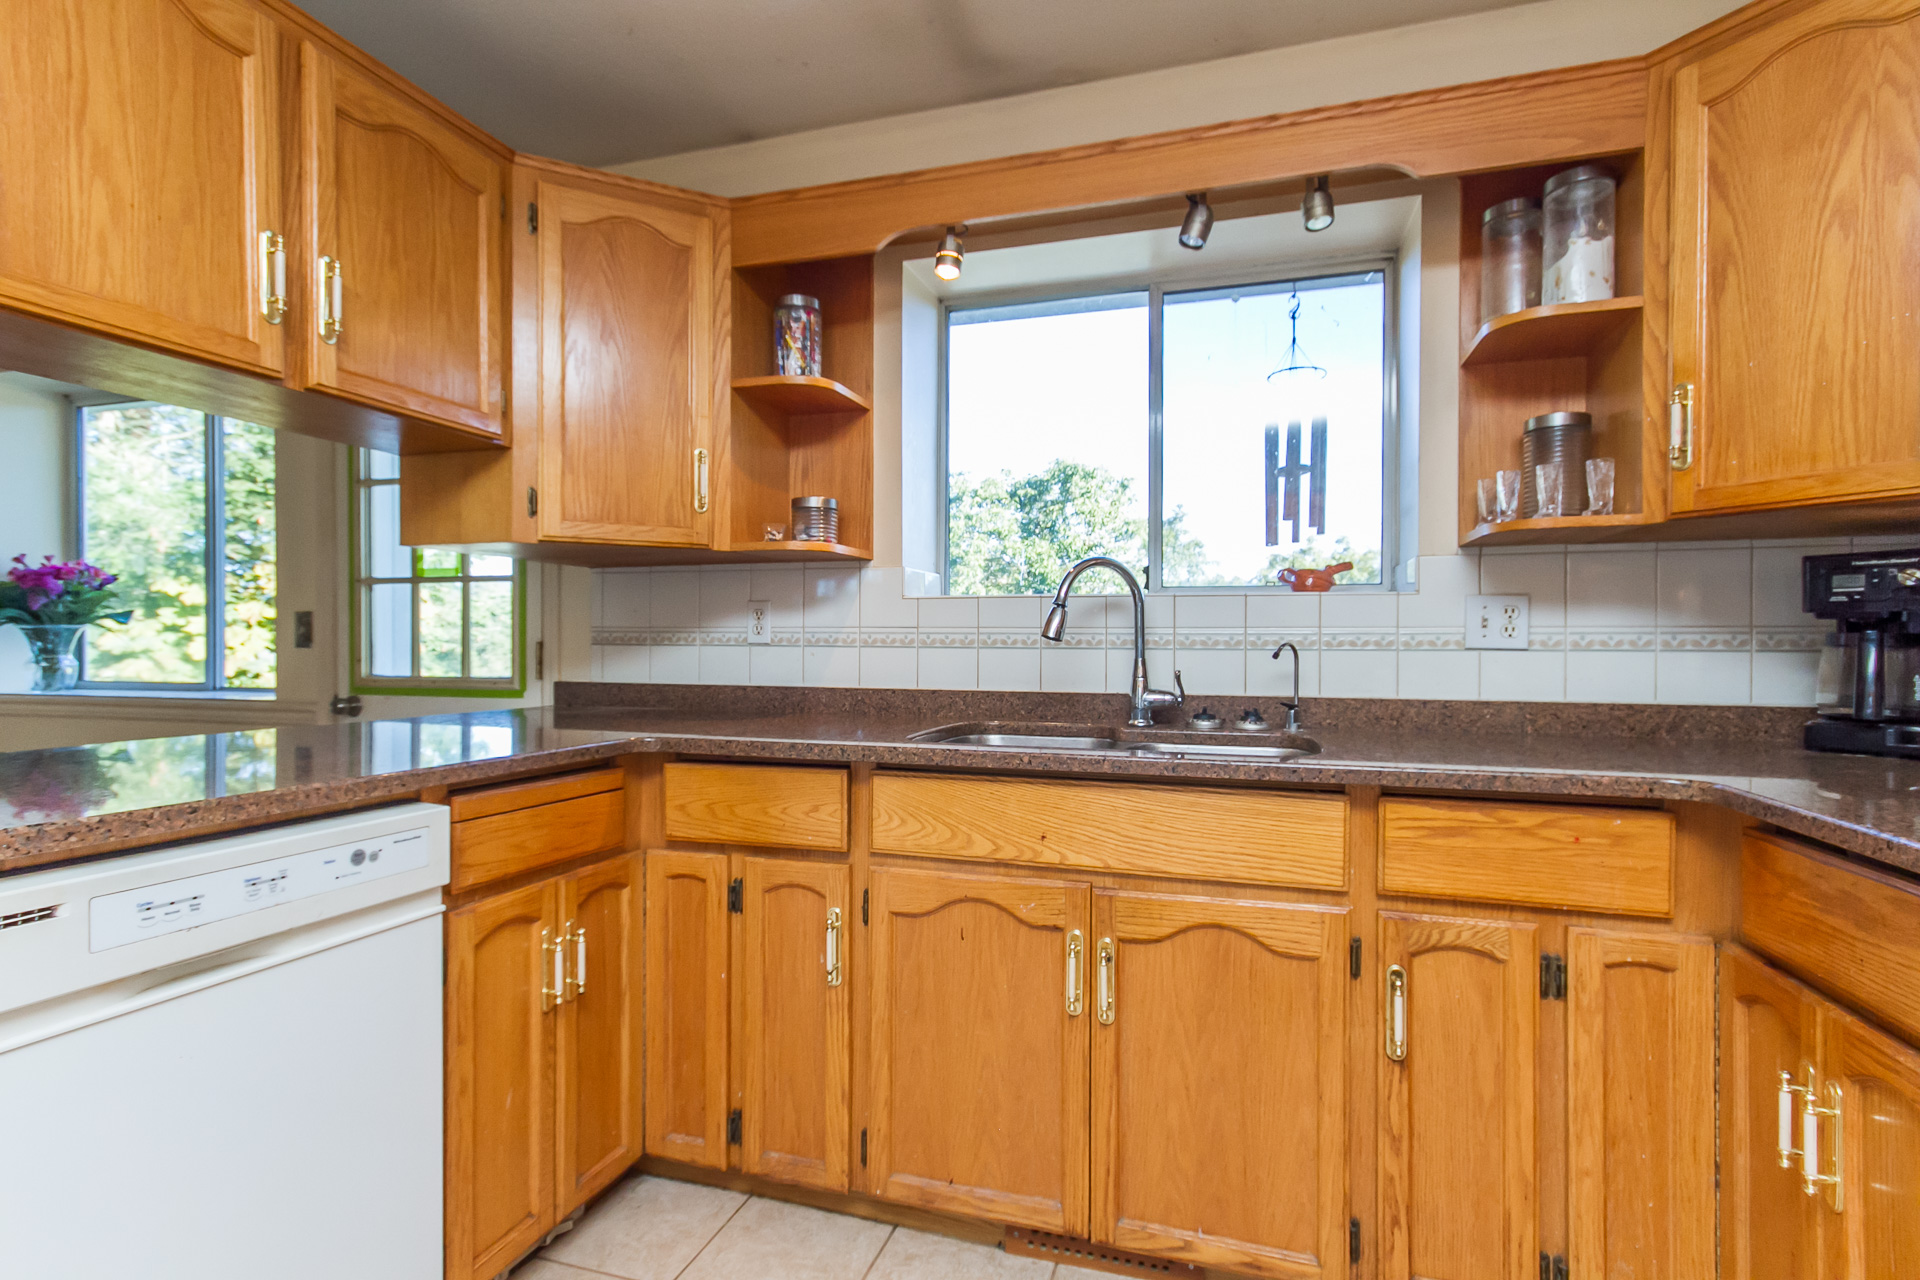 kitchen cabinets light setting of 5bdrm home on almost an acre in hatzic 20719